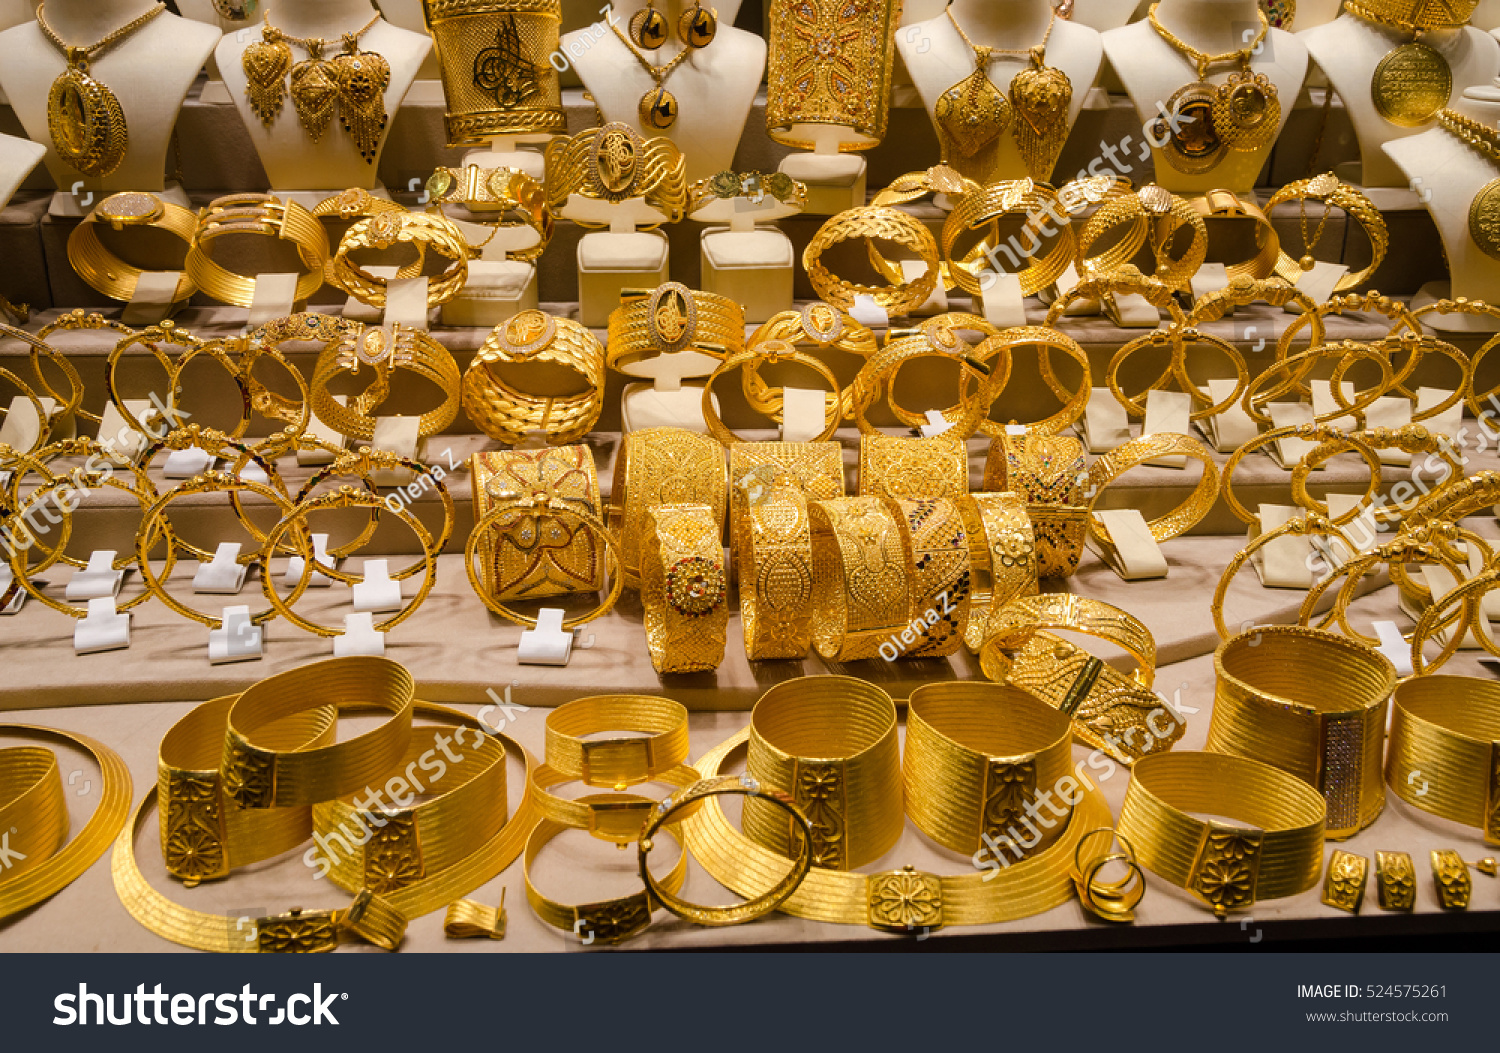 Gold Jewelry Egyptian Bazaar Grand Bazaar Stock Photo Image